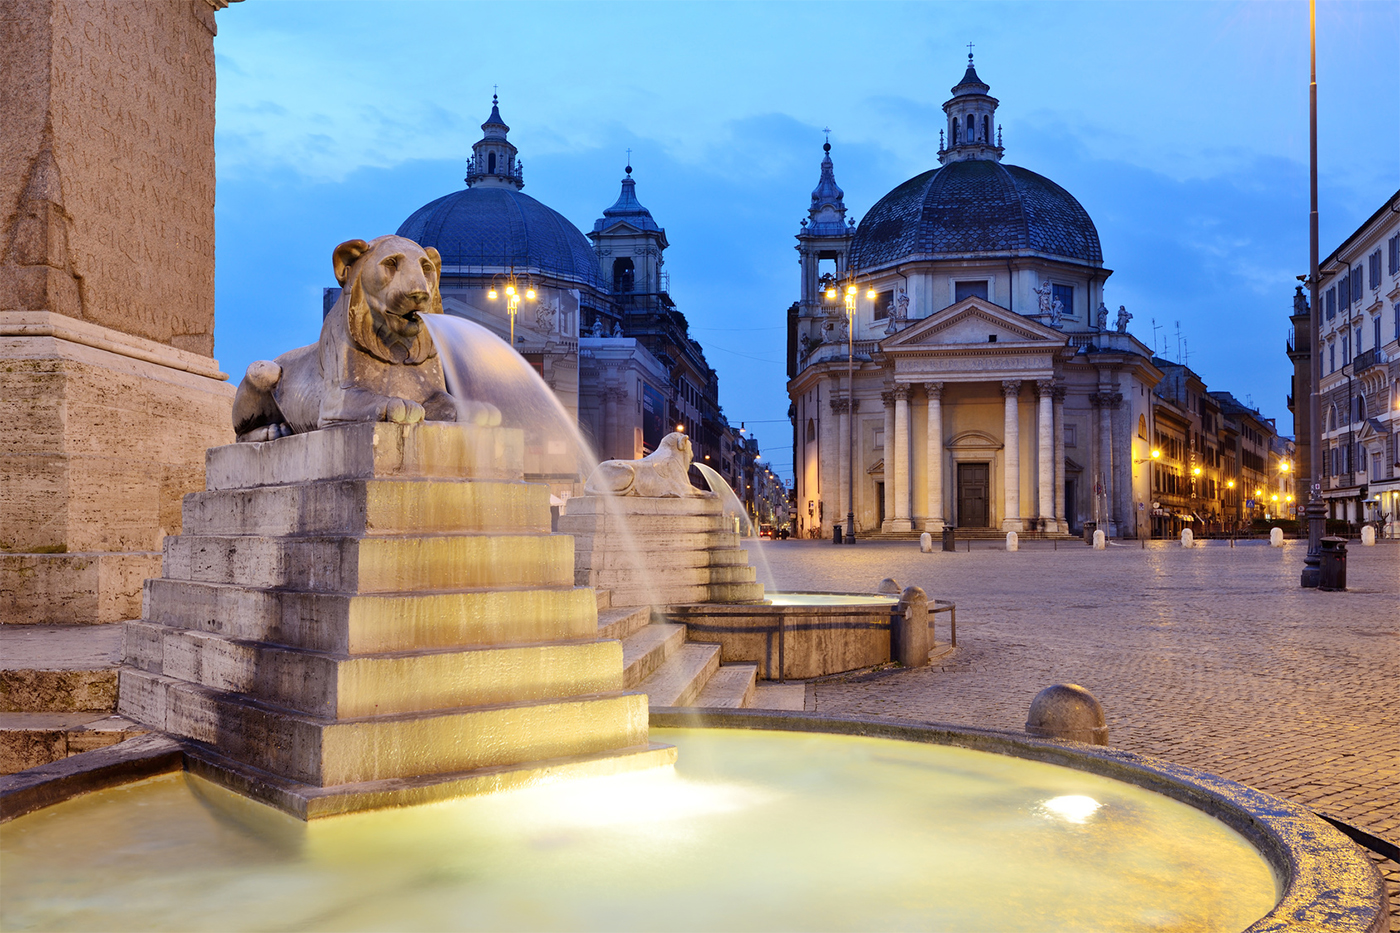 Piazza del Popolo - Particular of the basins with lions